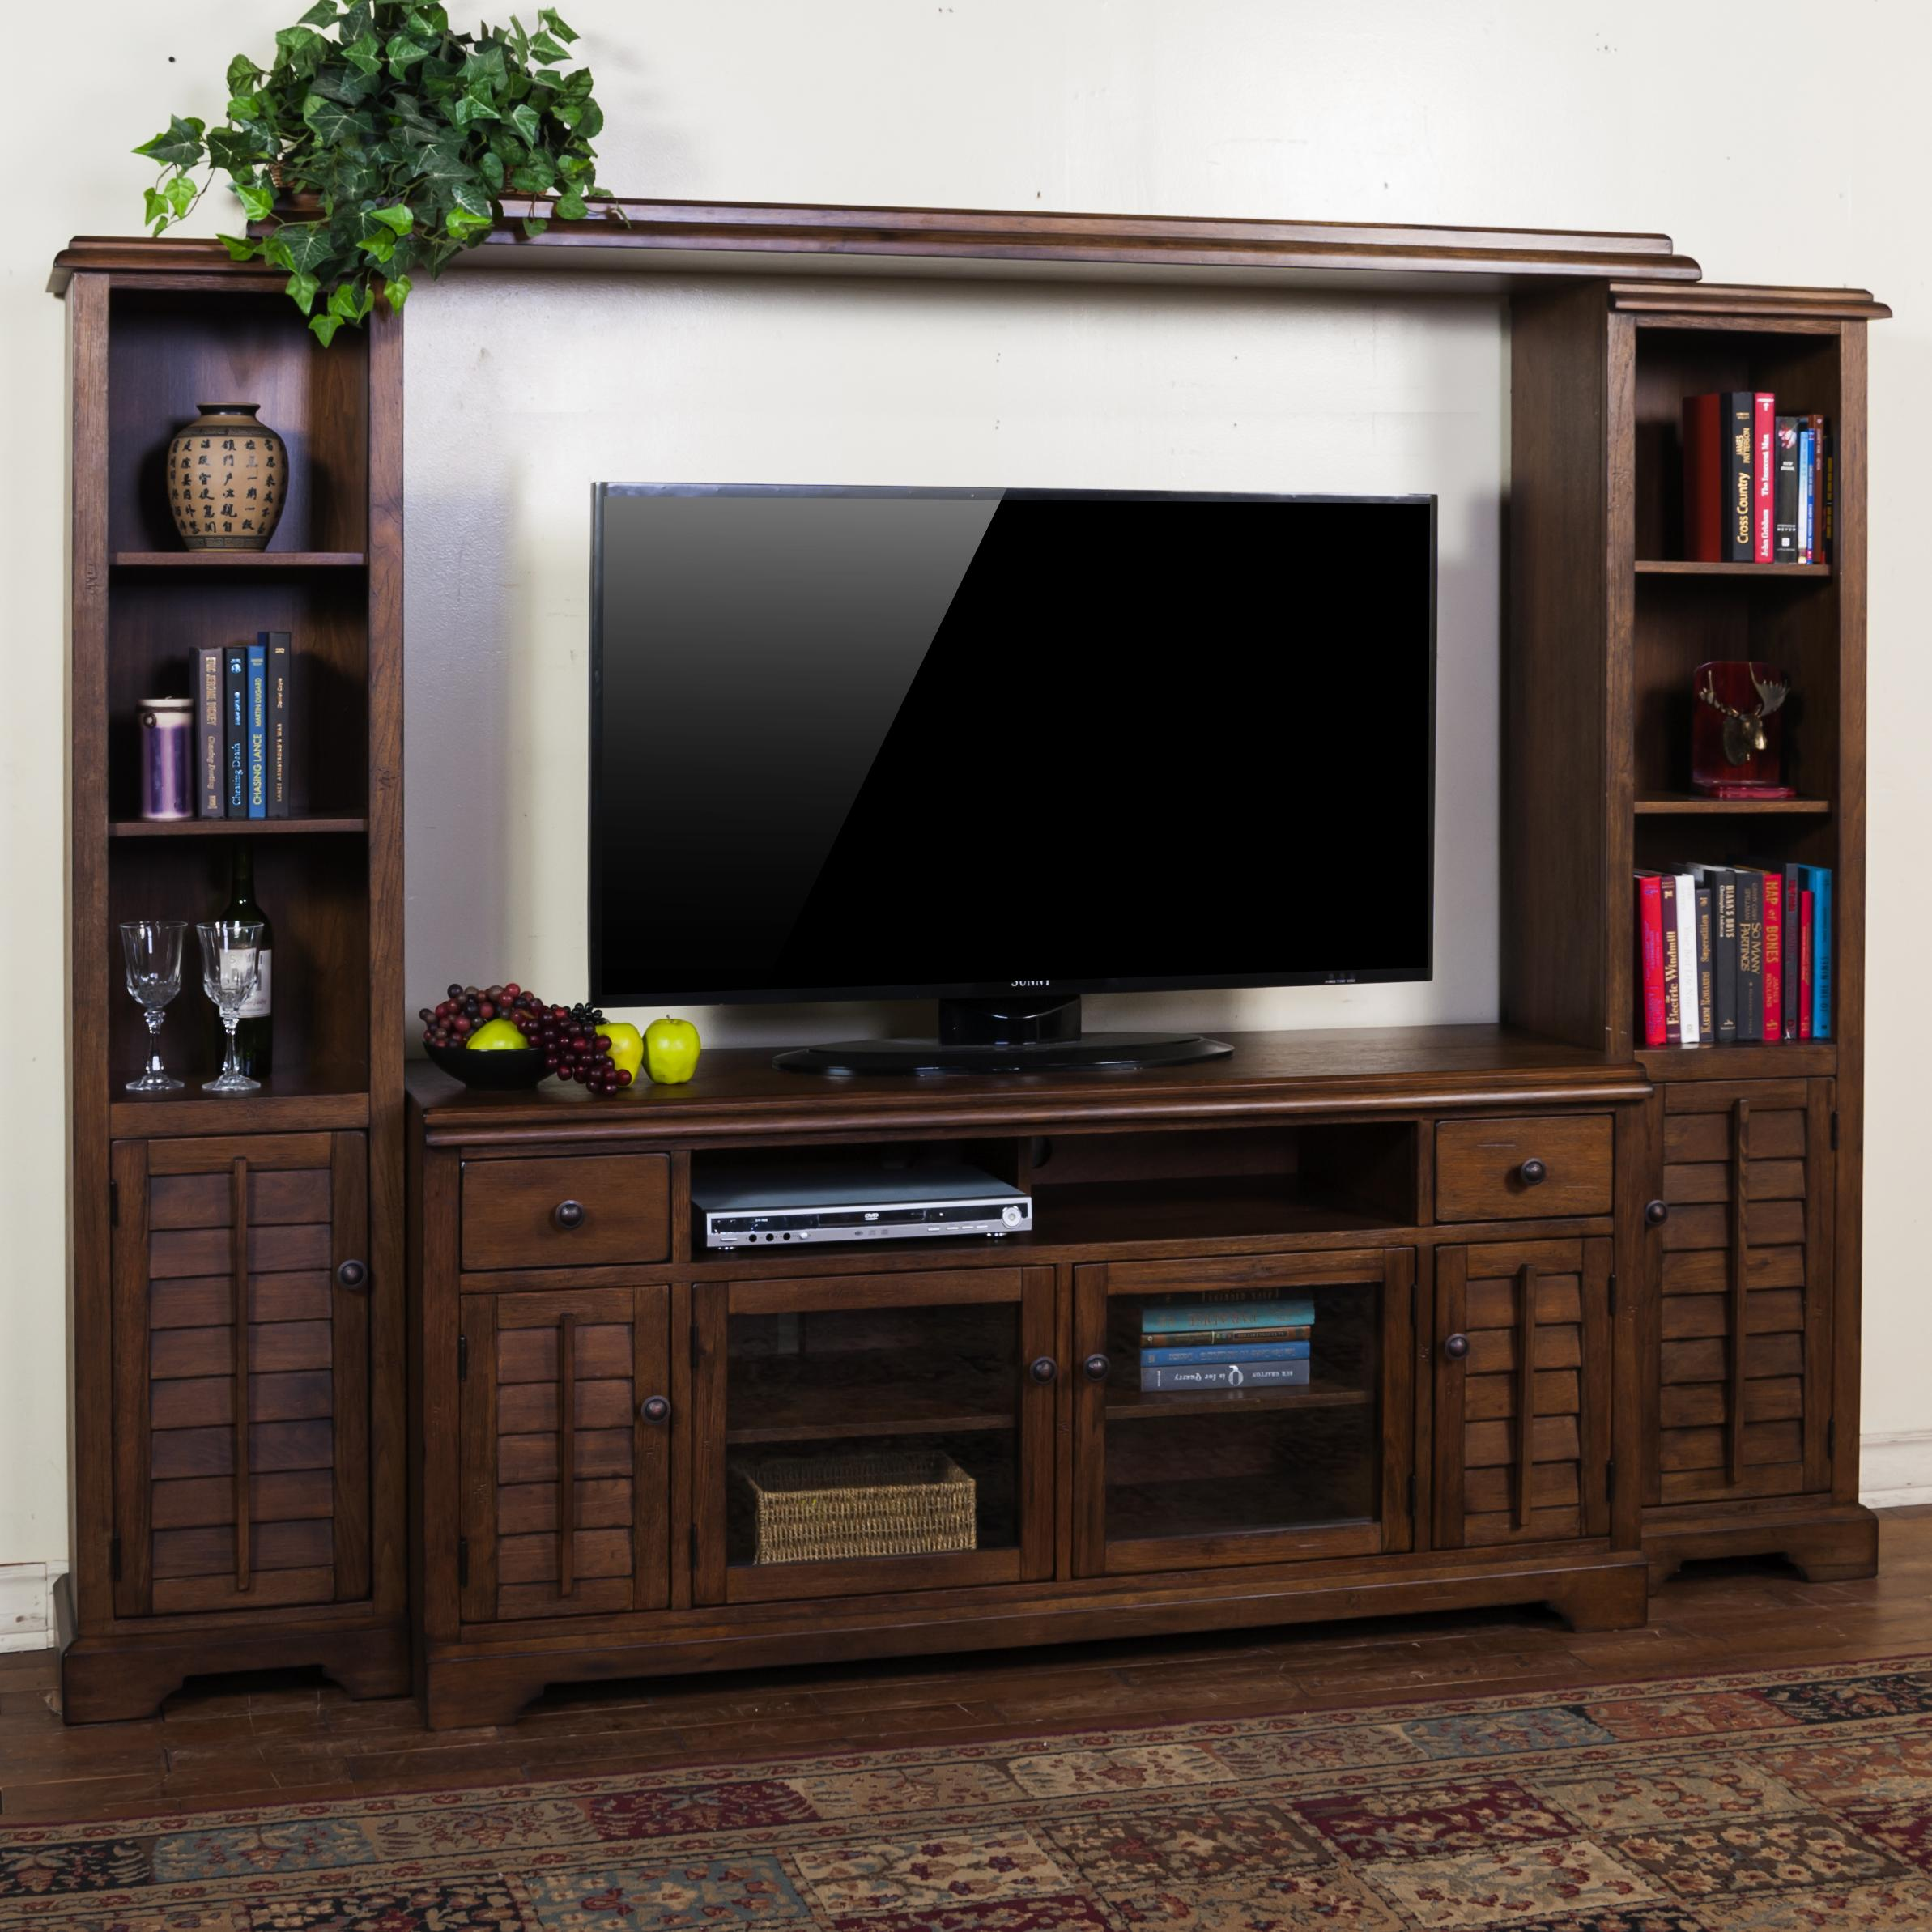 Wooden Finish Wall Unit Combinations From Hlsta Modern Tv Wall - wall units designs